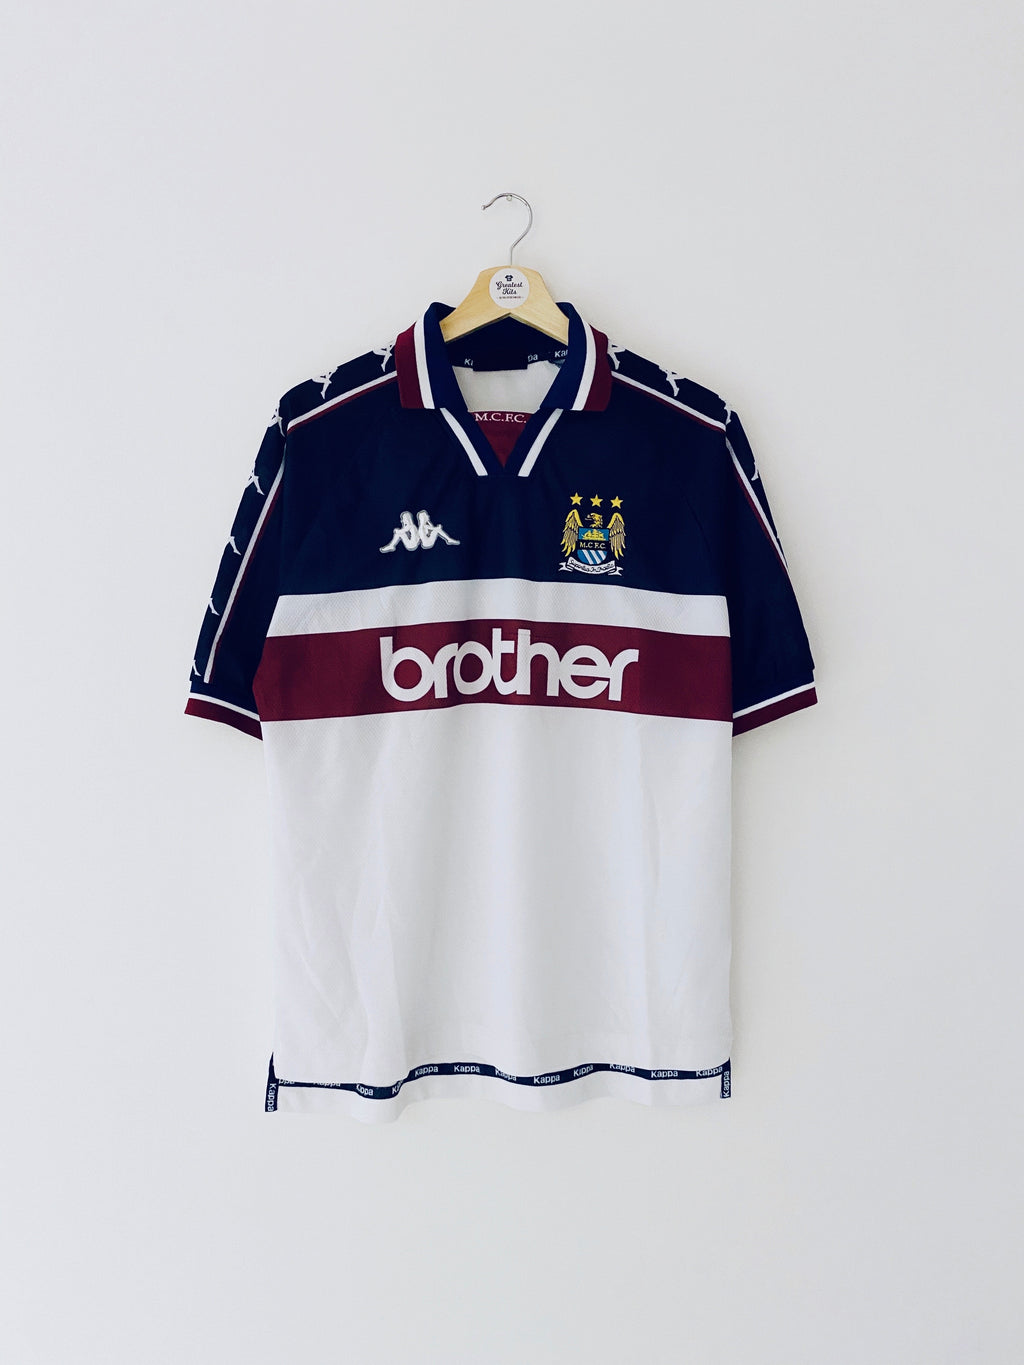 1997/98 Manchester City Away Shirt (M) 8/10